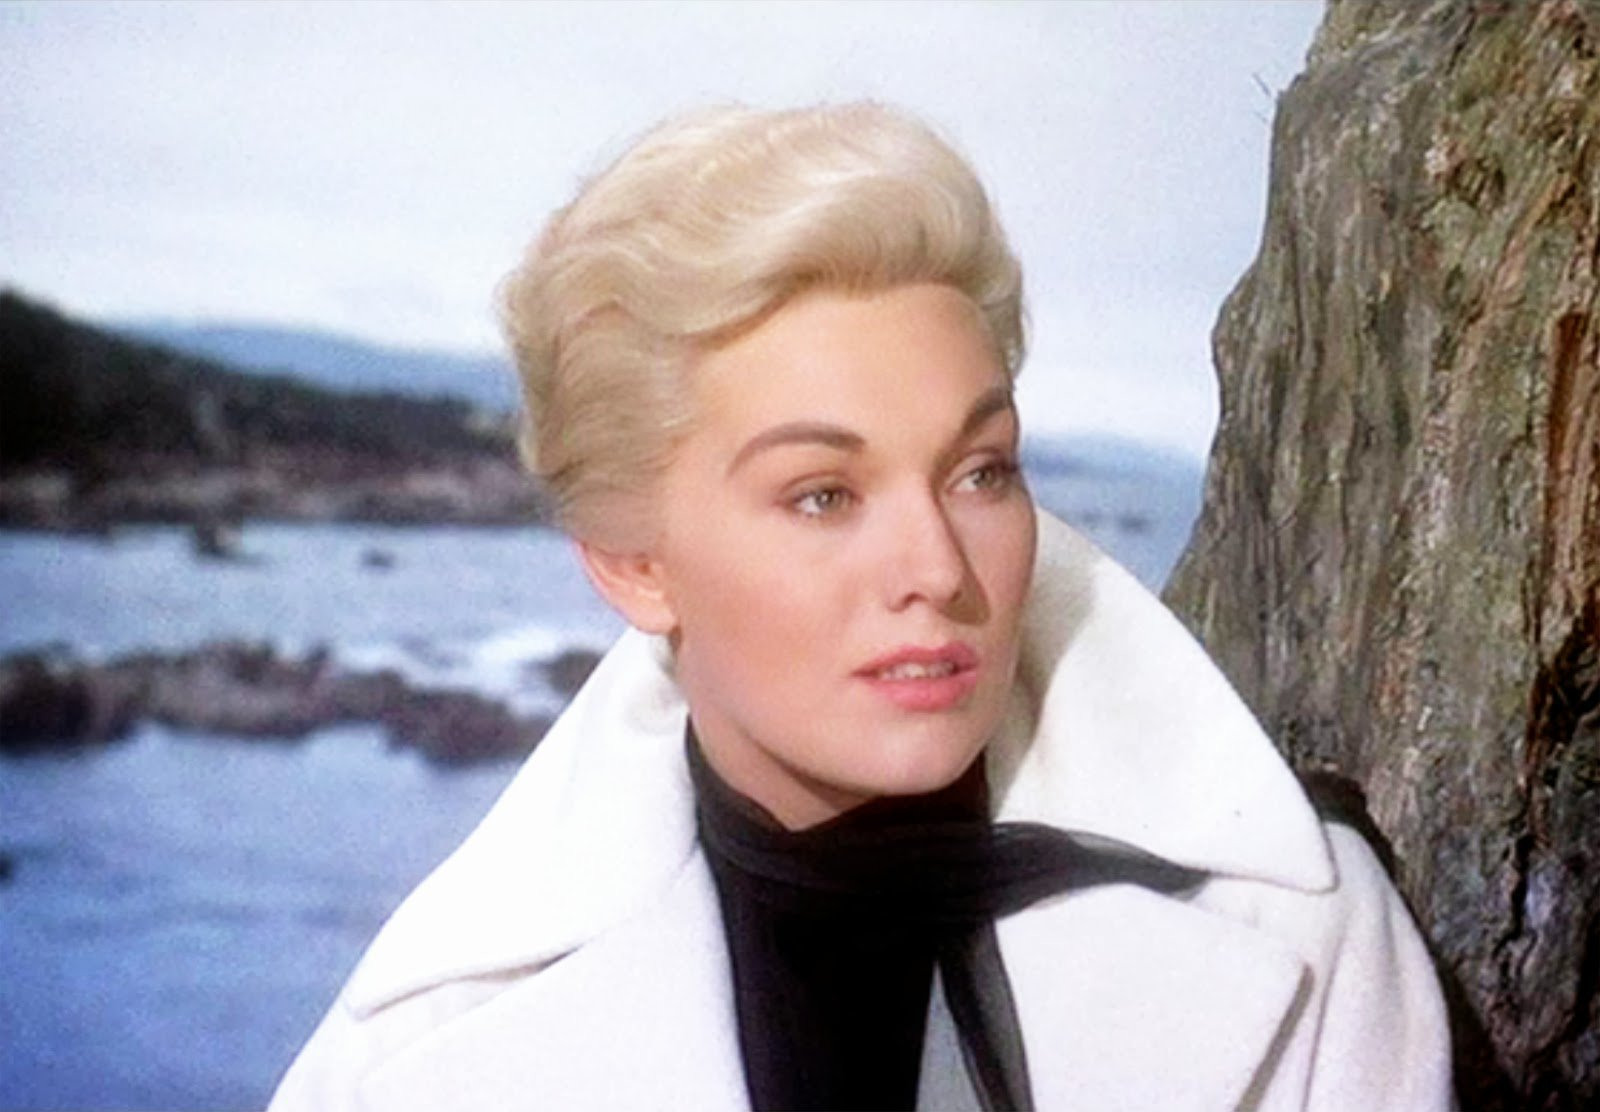 Happy birthday to a dazzling star of the silver screen, the drop-dead gorgeous Kim Novak!